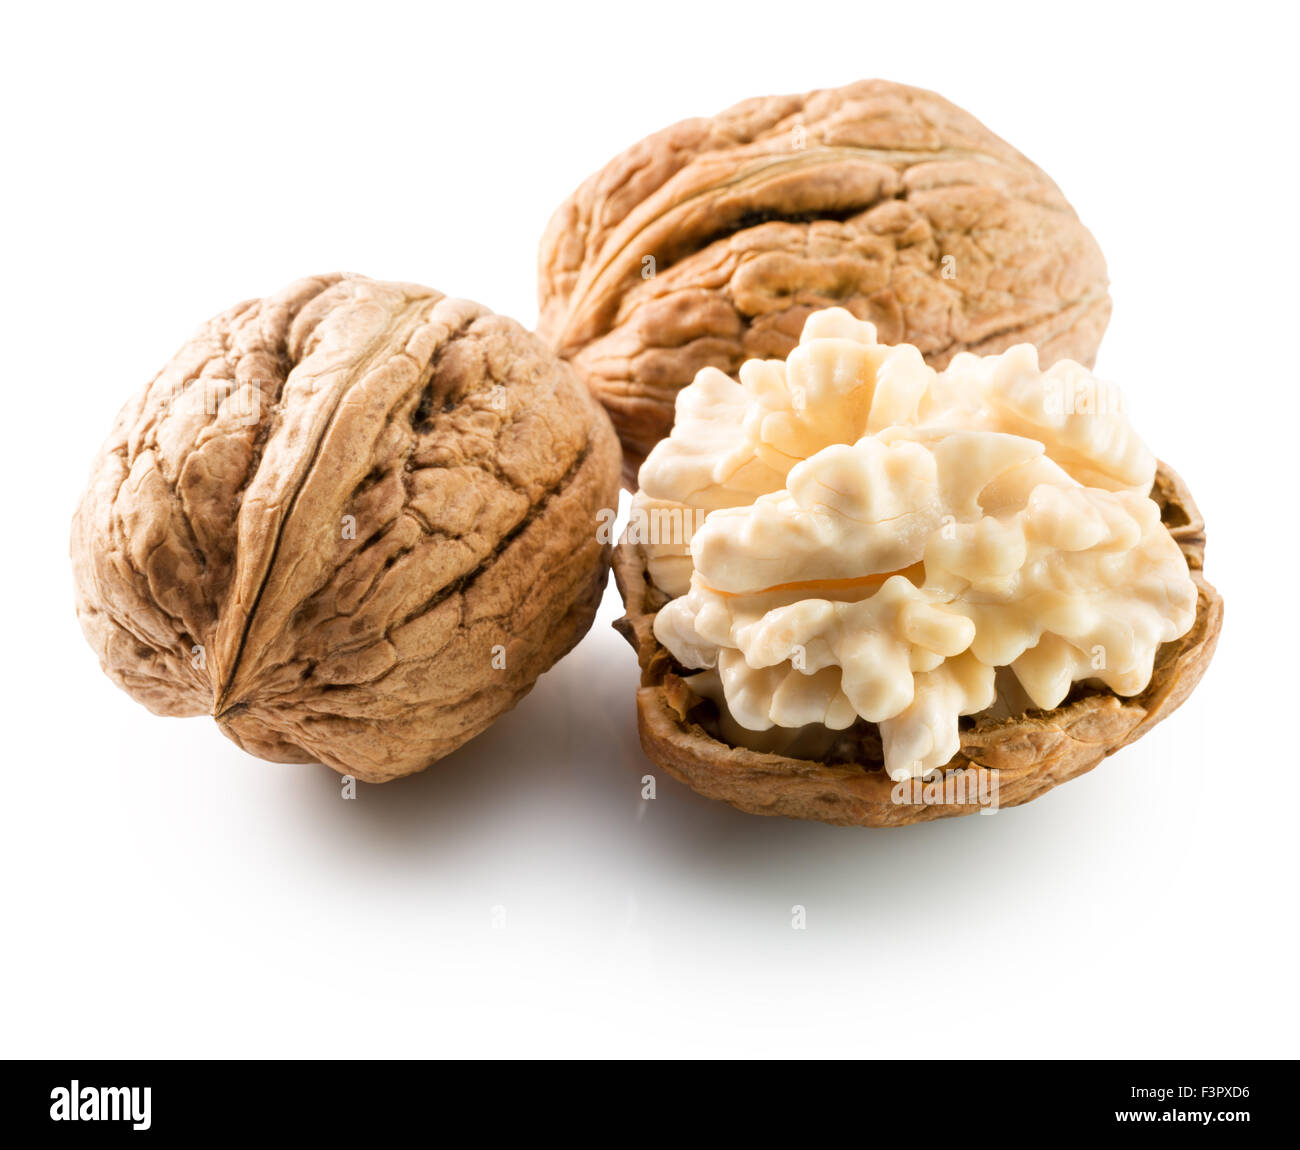 walnuts with nucleus isolated on the white background. - Stock Image